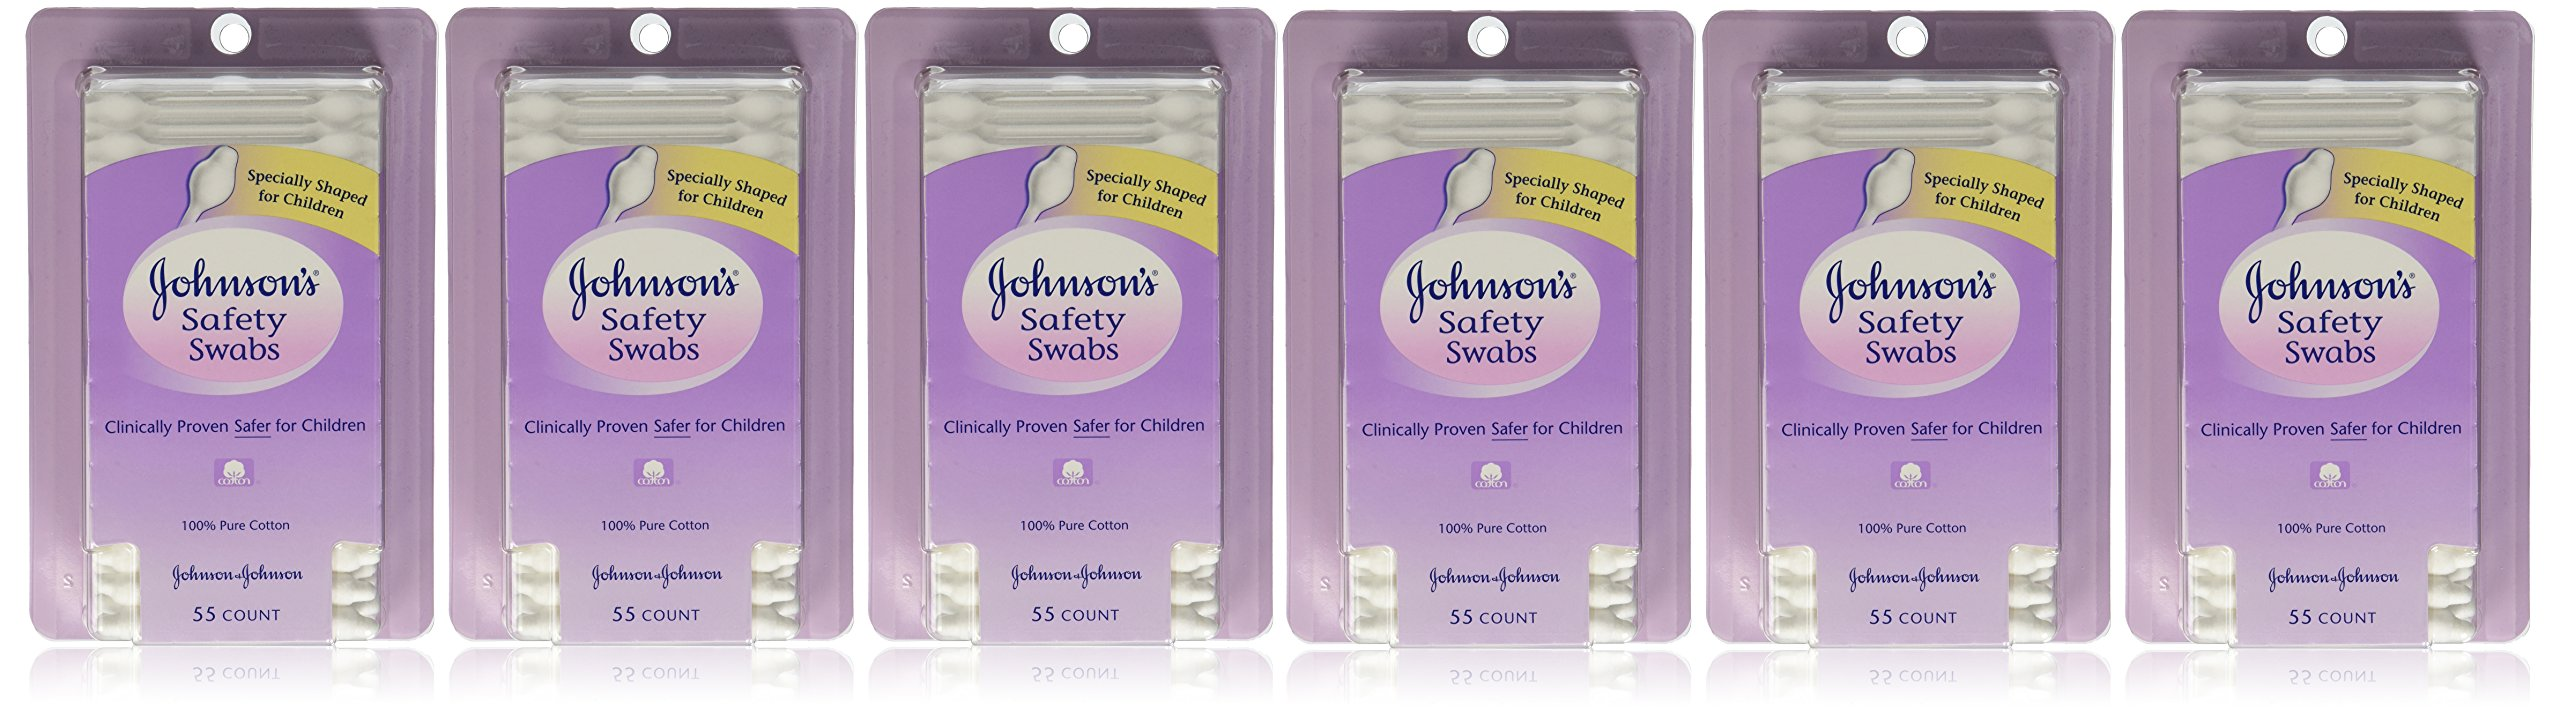 Johnson & Johnson Johnsons Safety Swabs 55 Count Peg (Pack of 6)